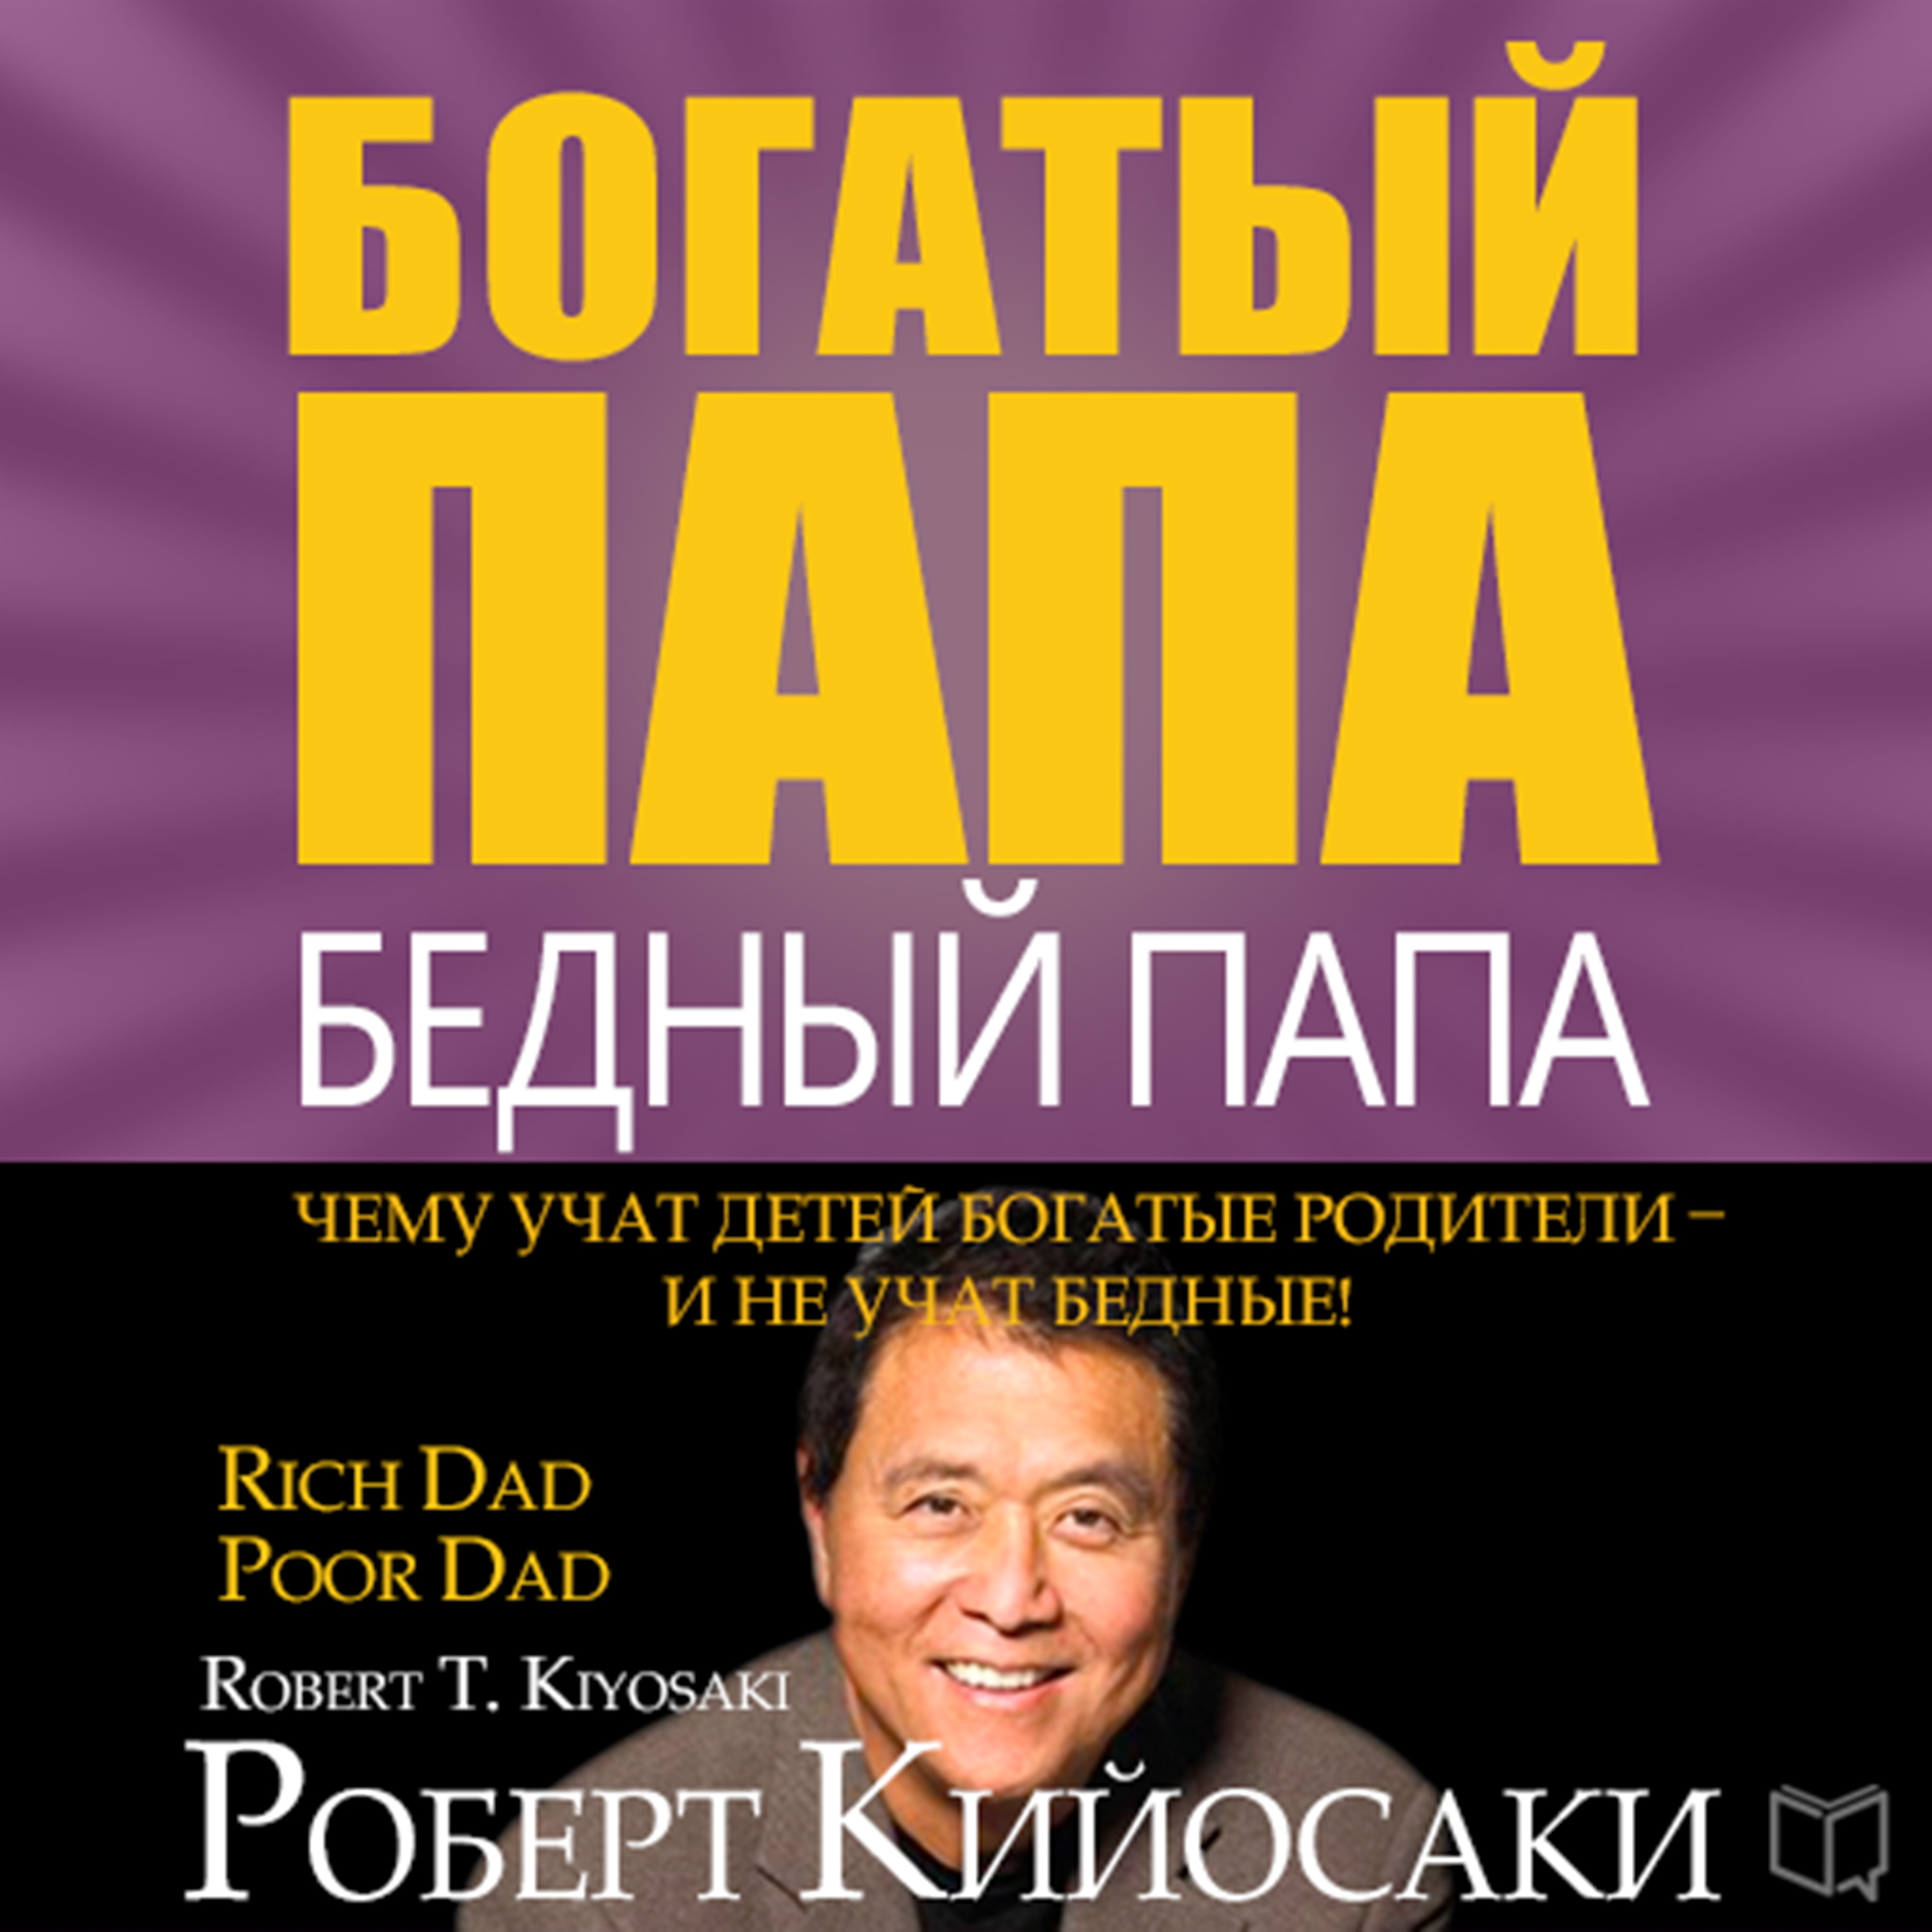 Printable Rich Dad Poor Dad: What the Rich Teach Their Kids About Money That the Poor and Middle Class Do Not! [Russian Edition] Audiobook Cover Art